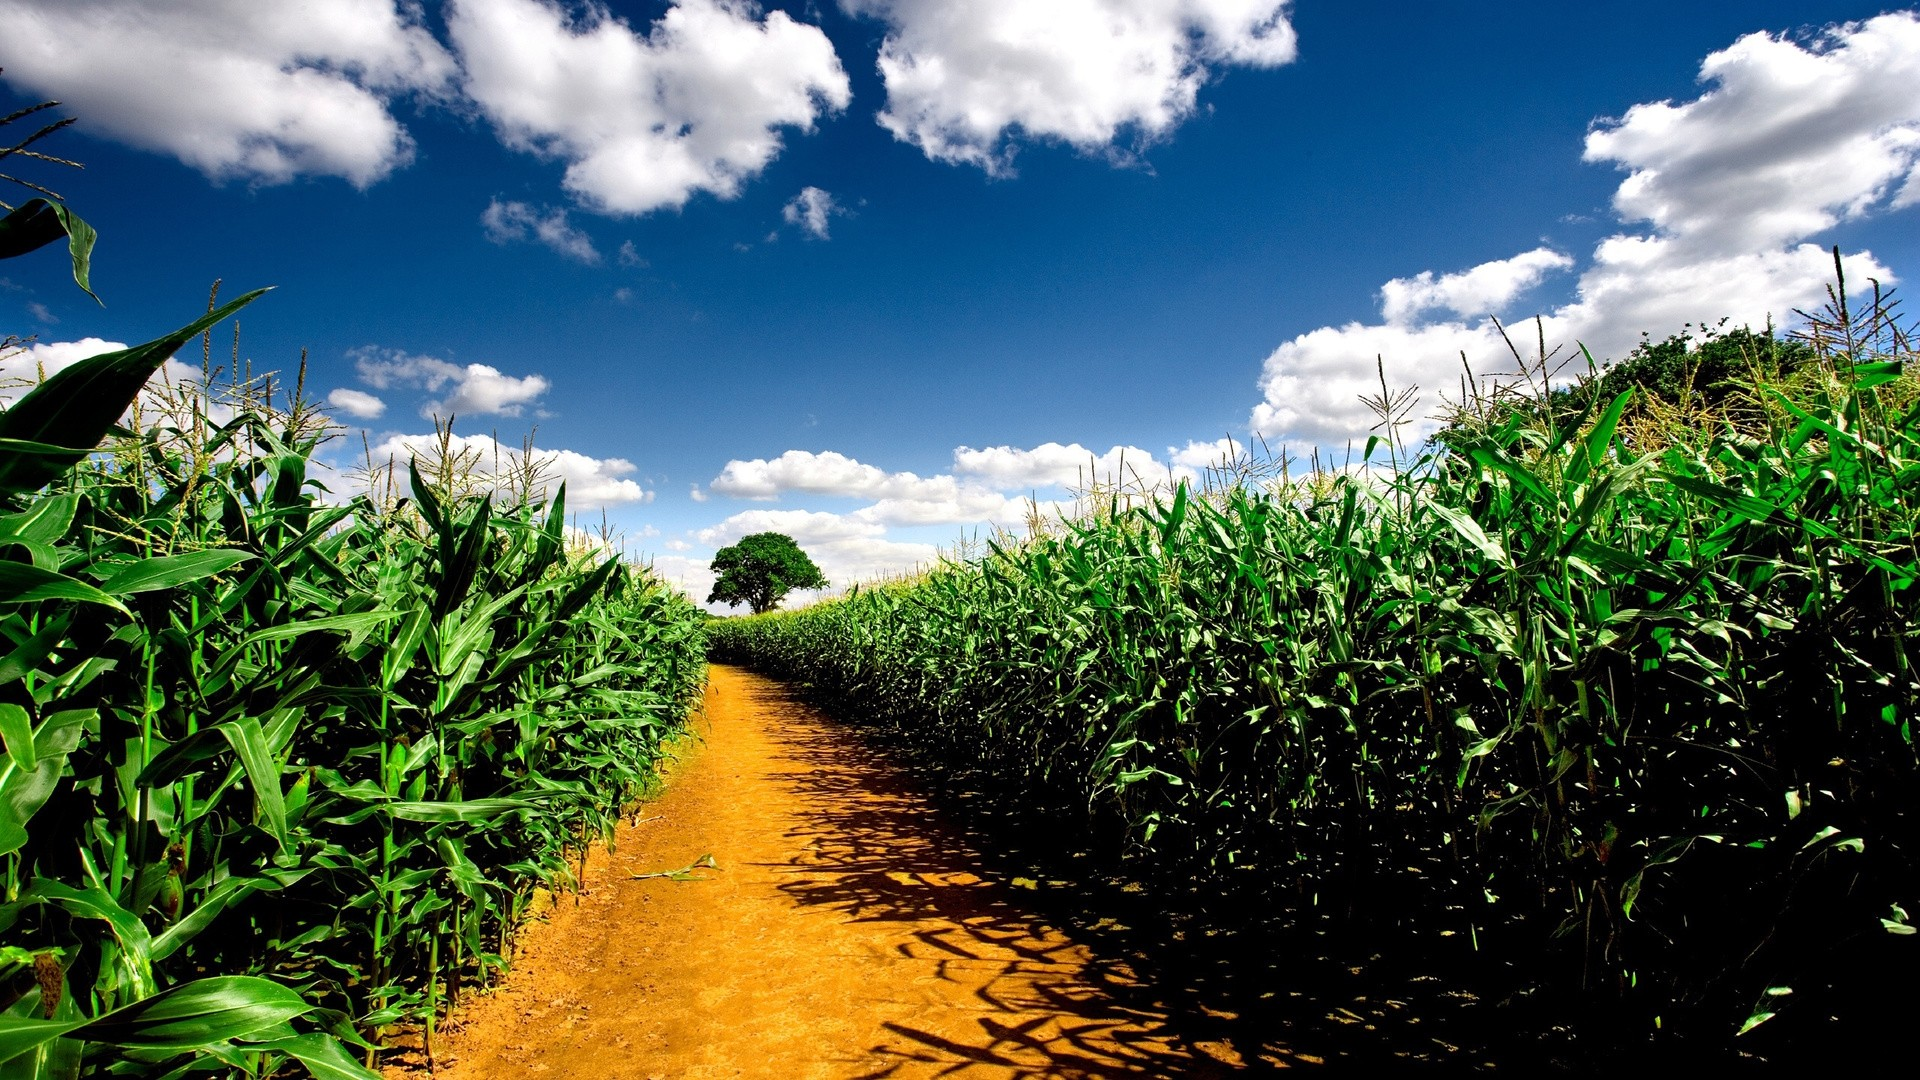 Cornfield Background